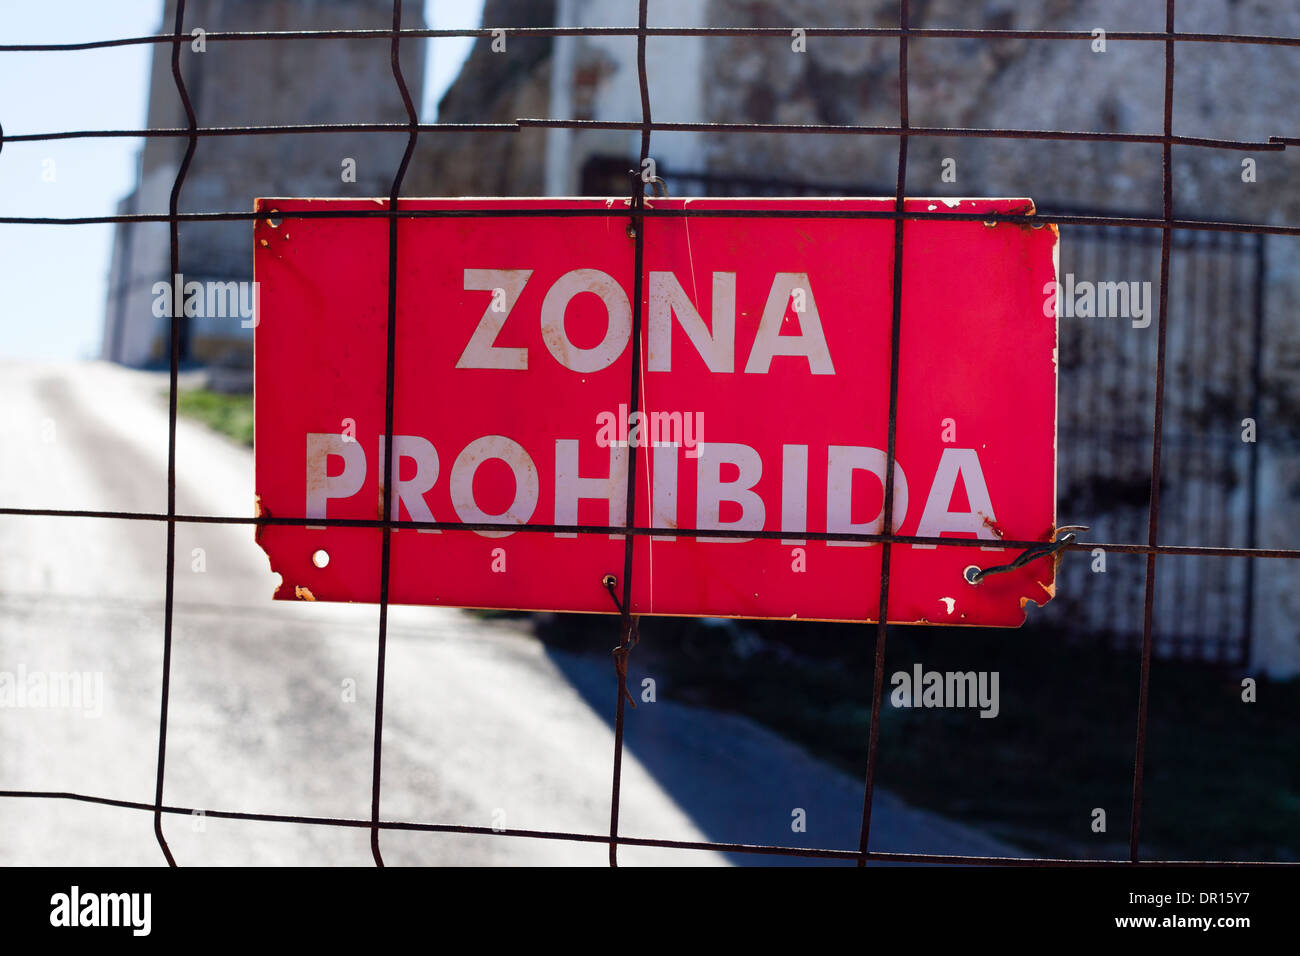 Zona Prohibida, red no entry sign on the fence in Spanish language. - Stock Image